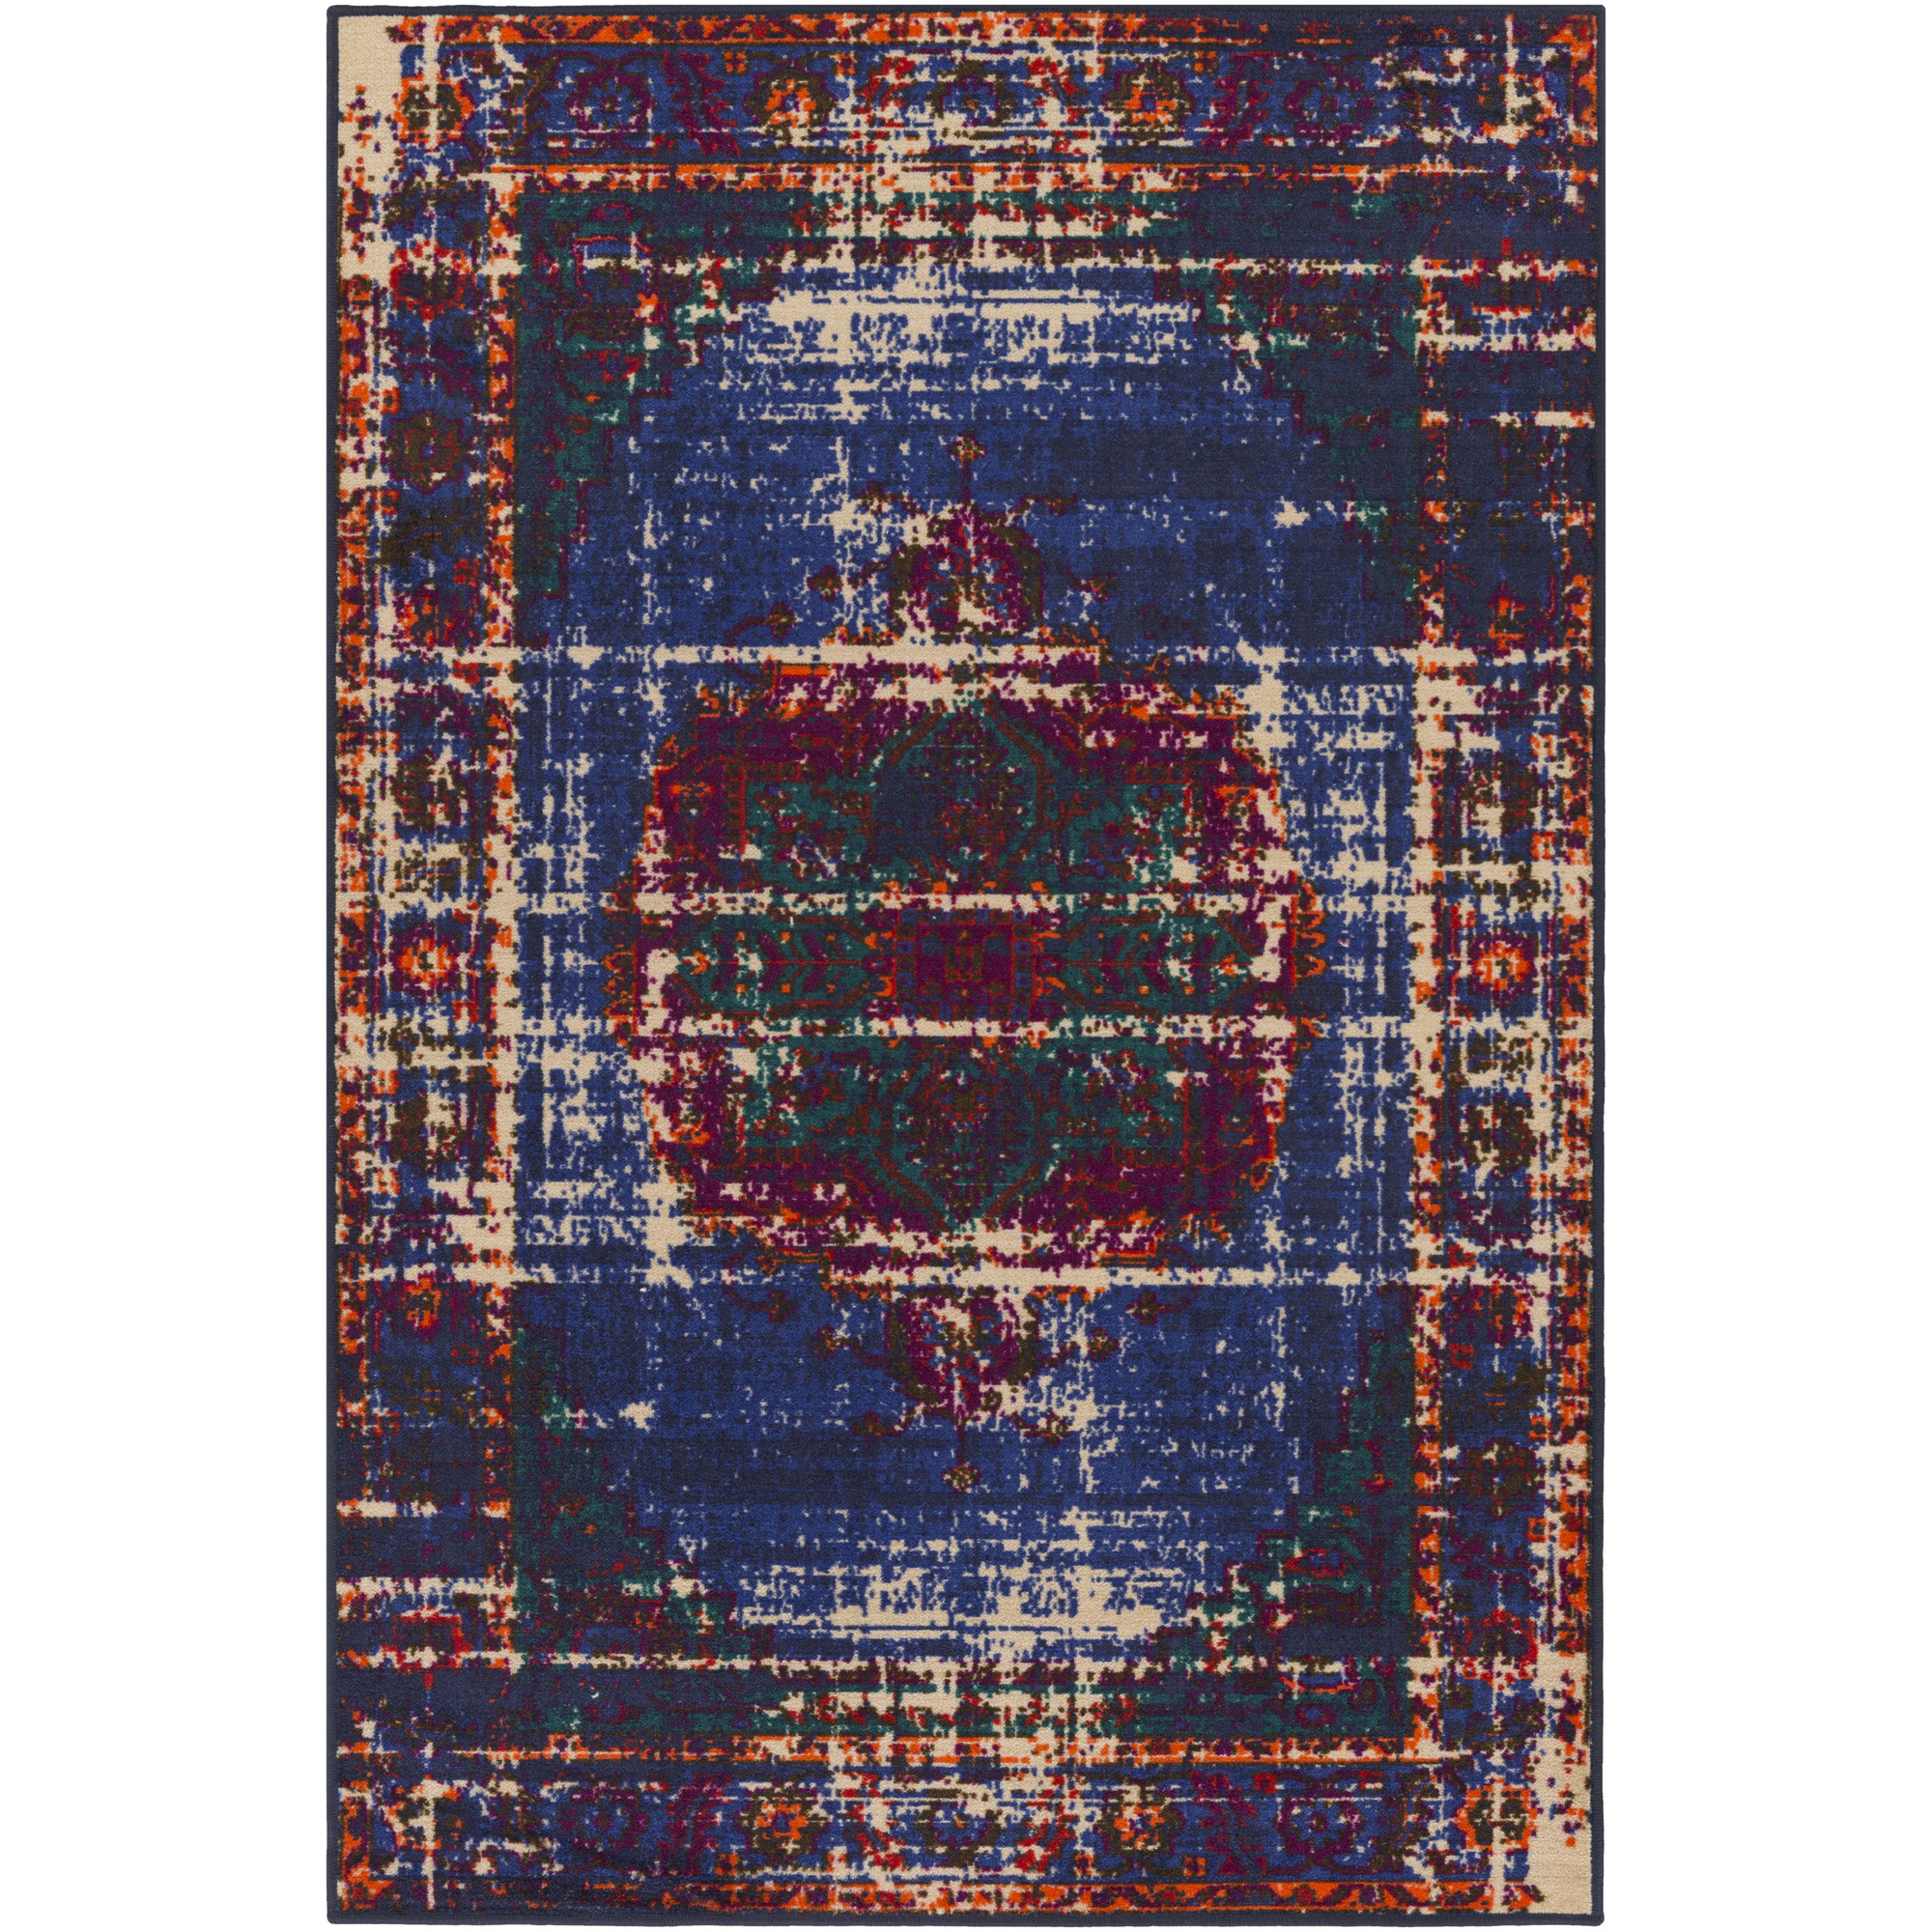 Art of Knot Altem 5' x 8' Rectangular Area Rug